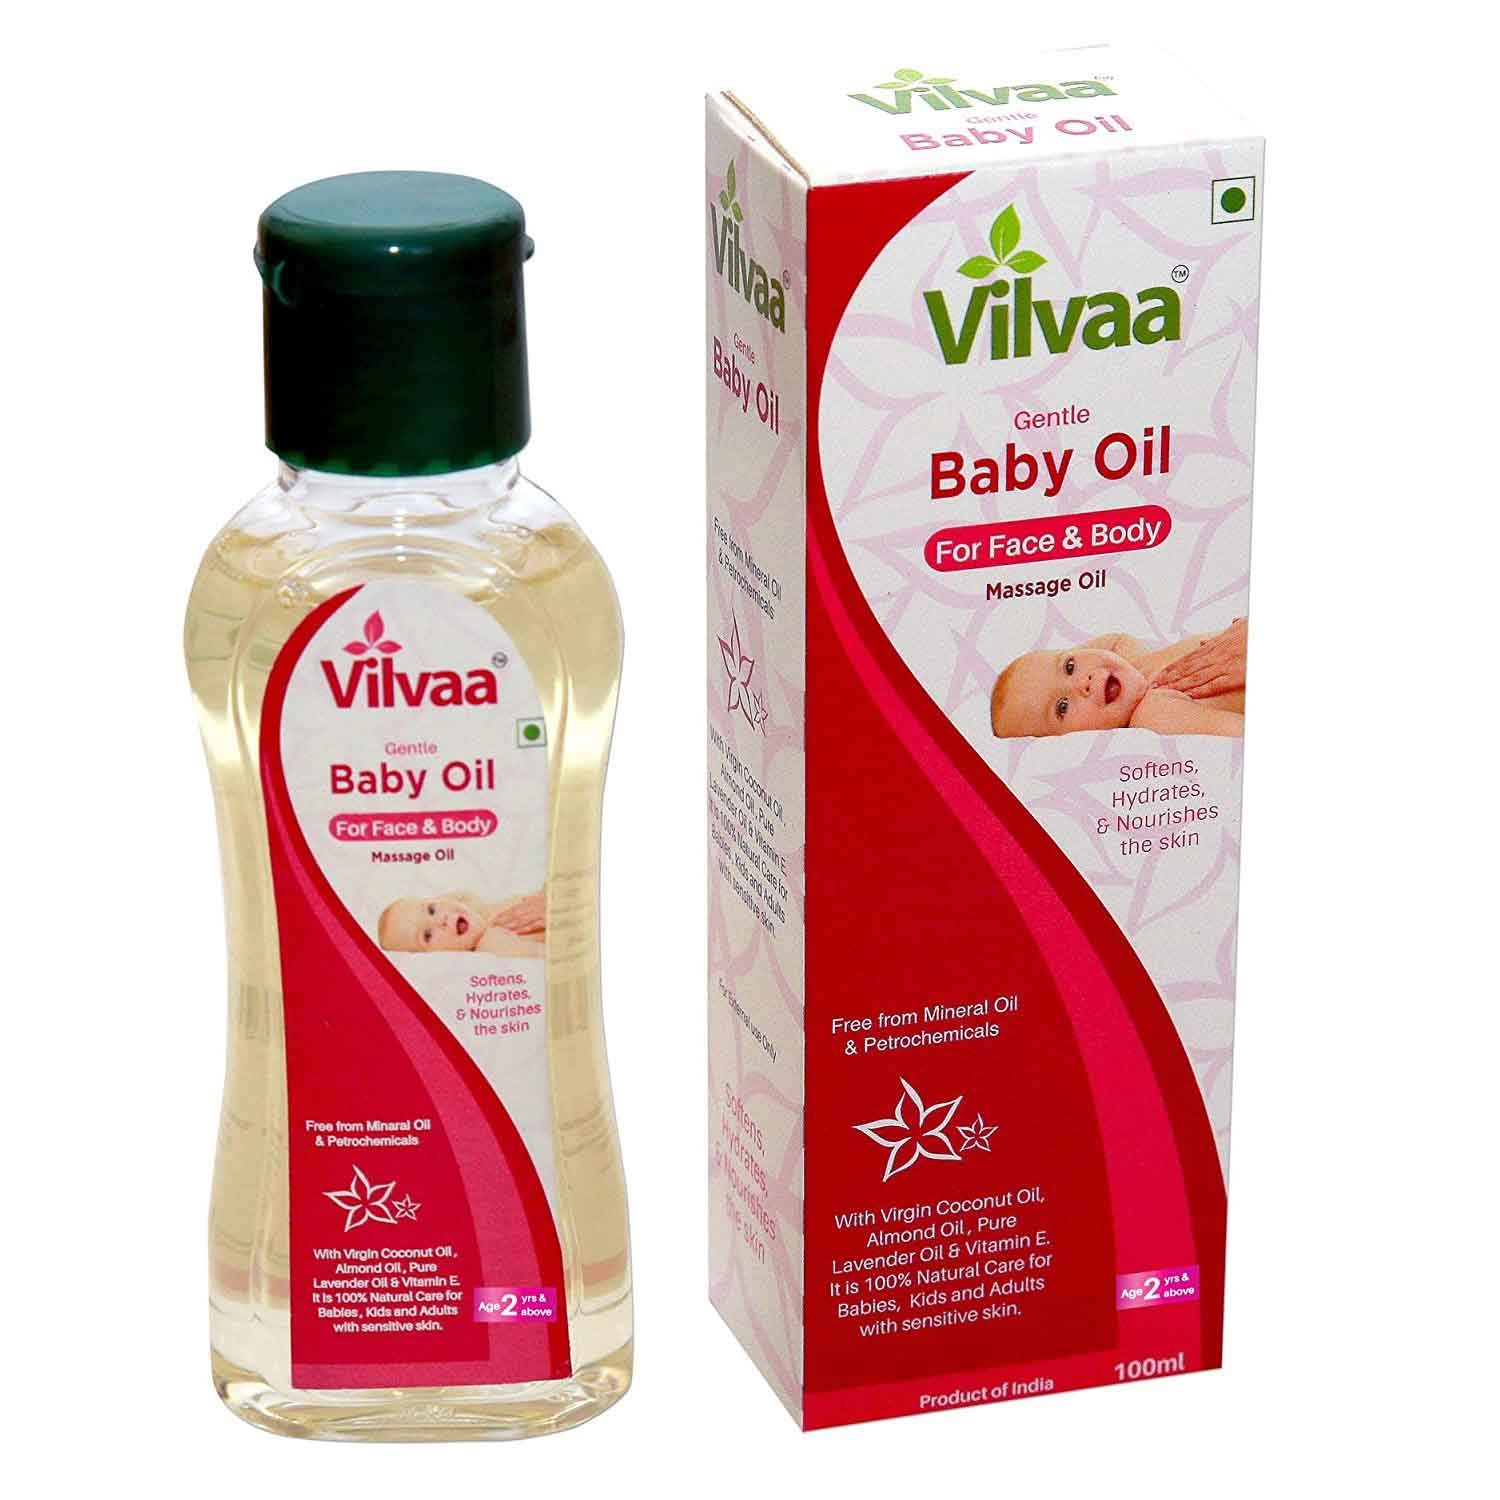 Vilvaa Gentle Baby Massage Oil 100ml – 2 Years and Above